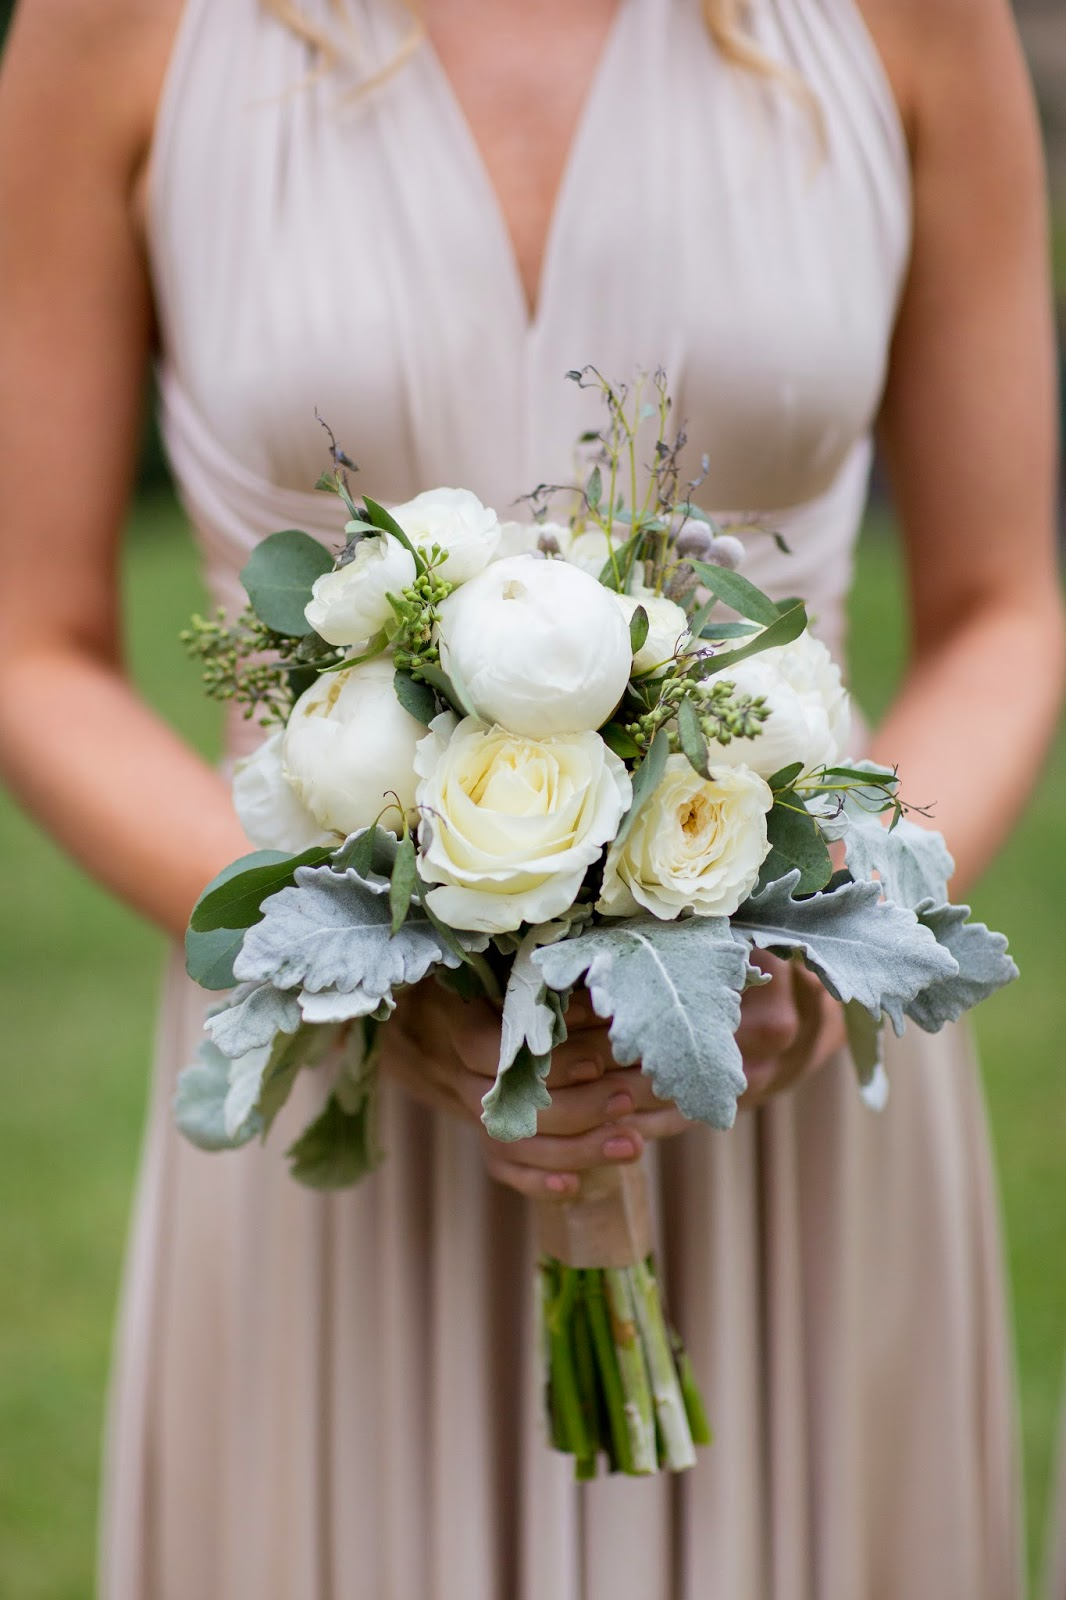 Bridal Boquet with dusty mller